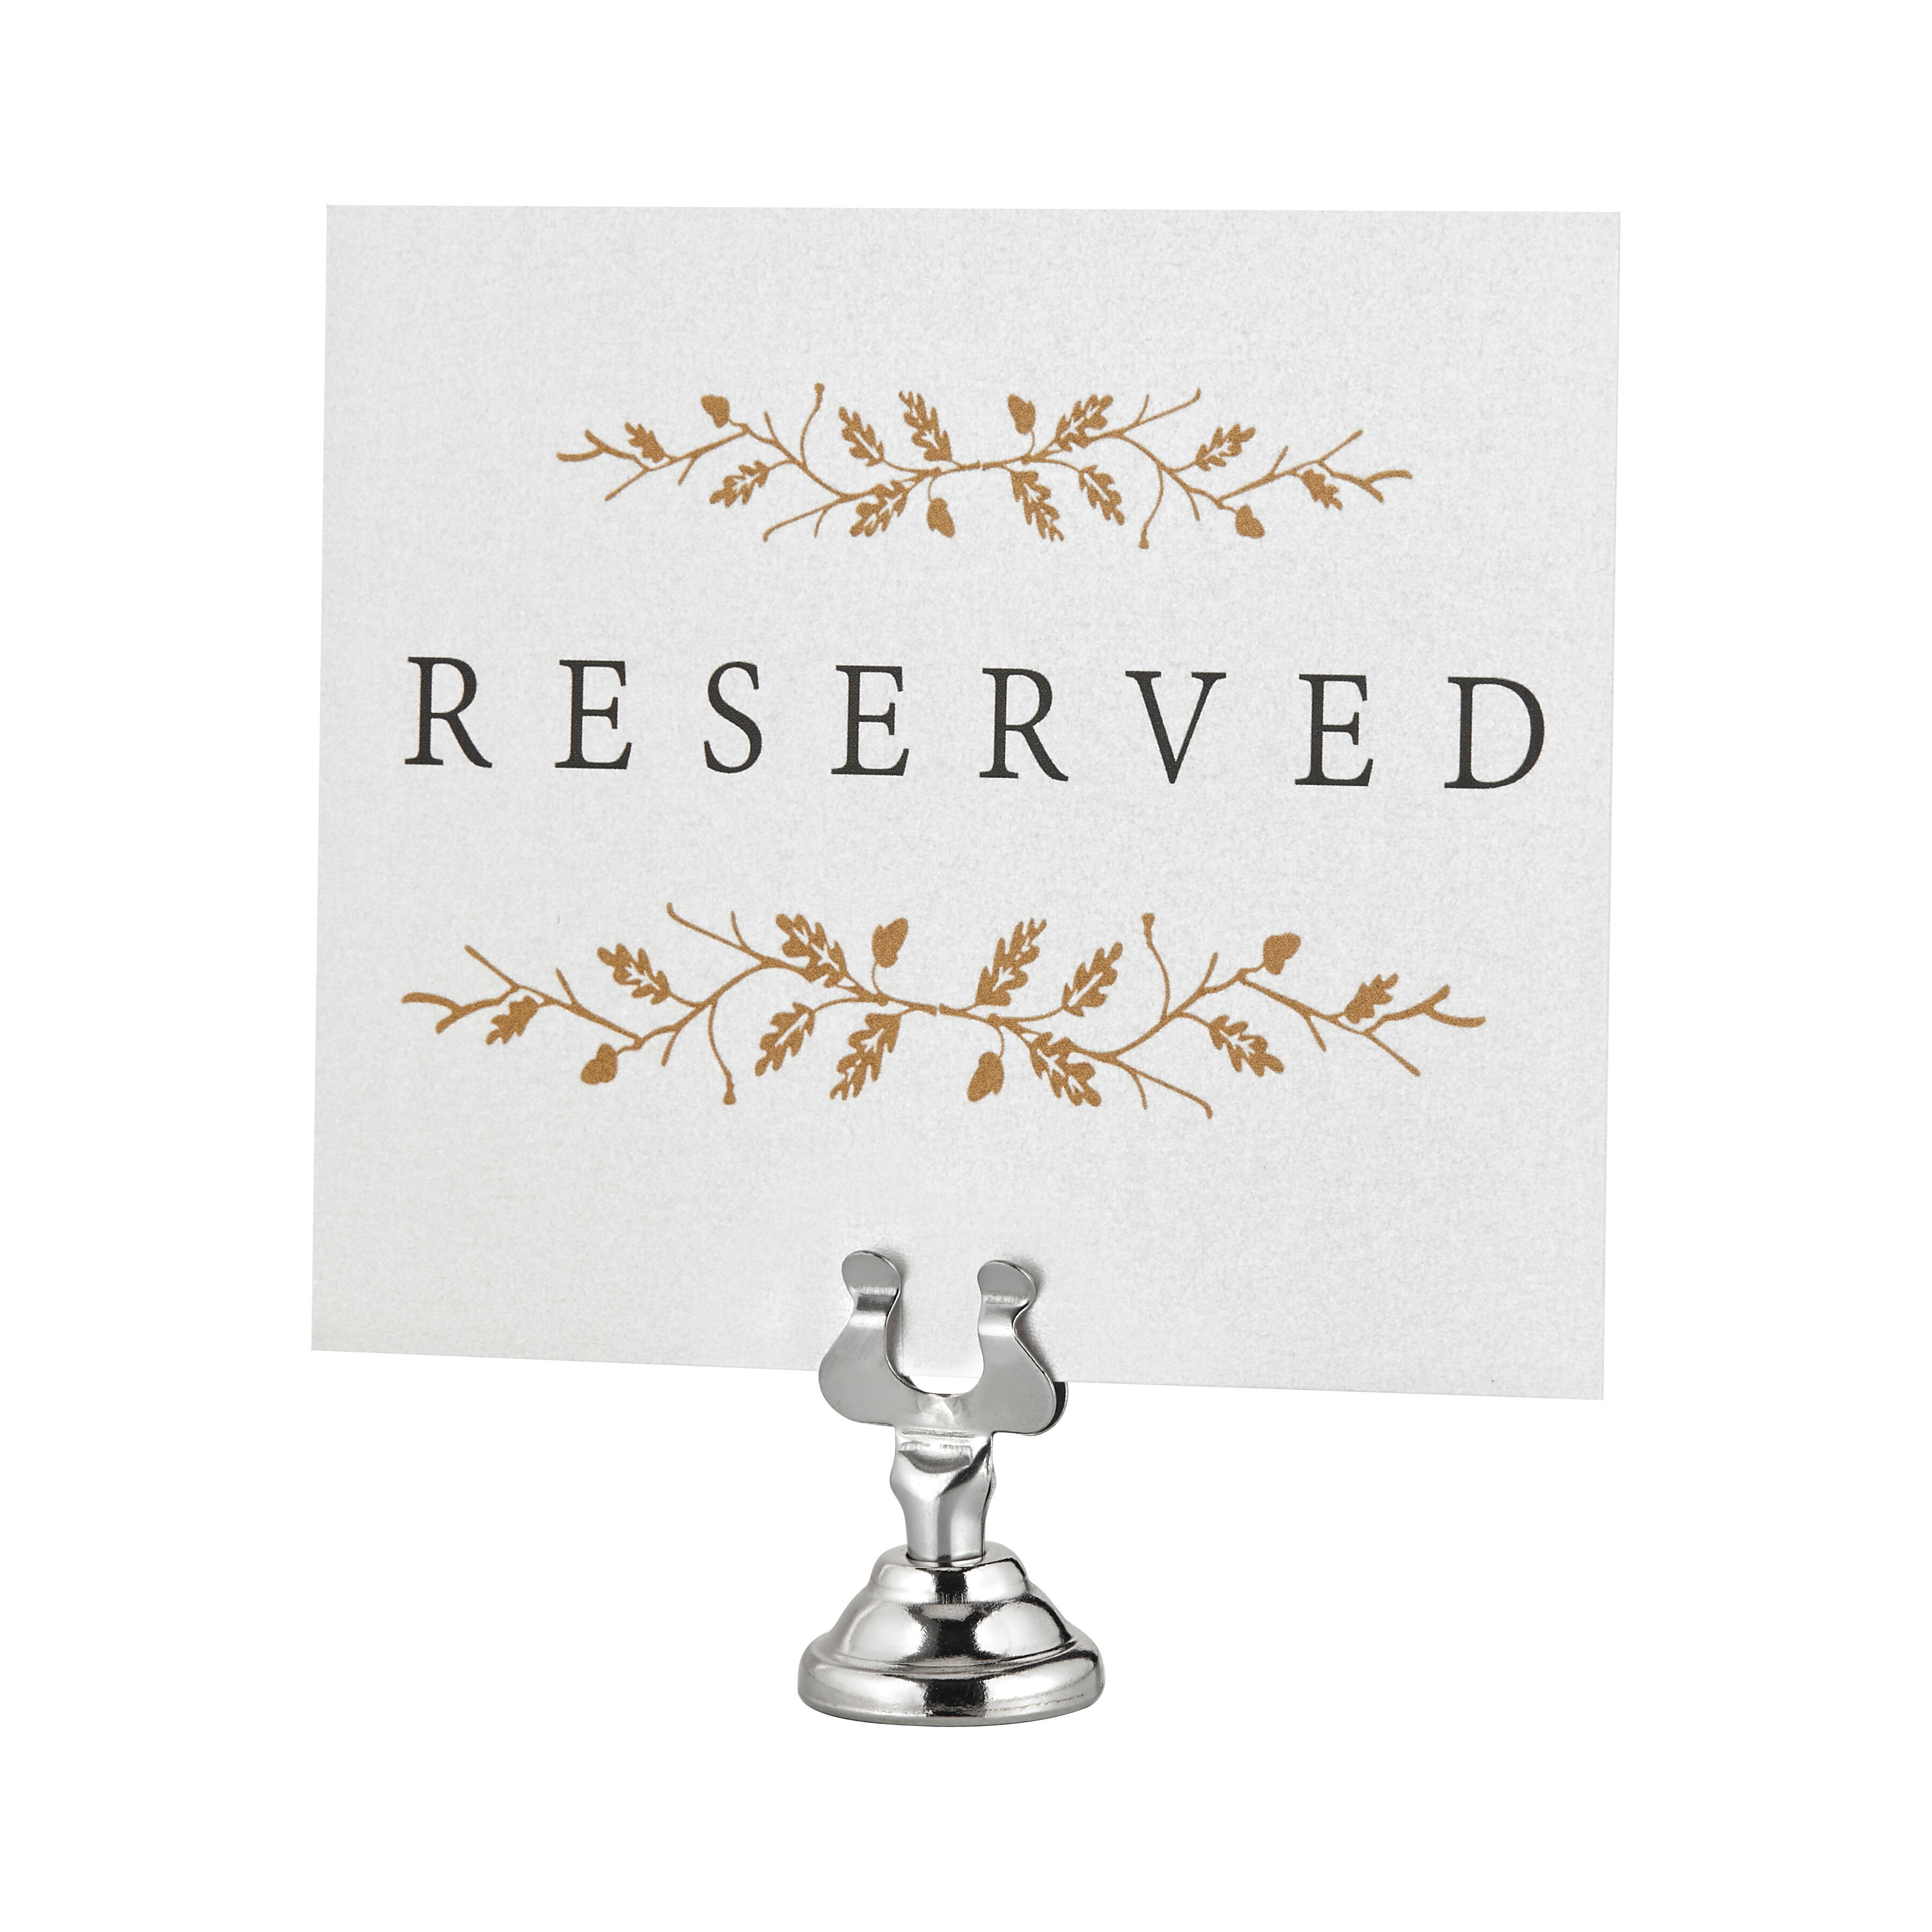 Stainless Steel Place Card Holders Cheese Markers You Ll Love In 2021 Wayfair